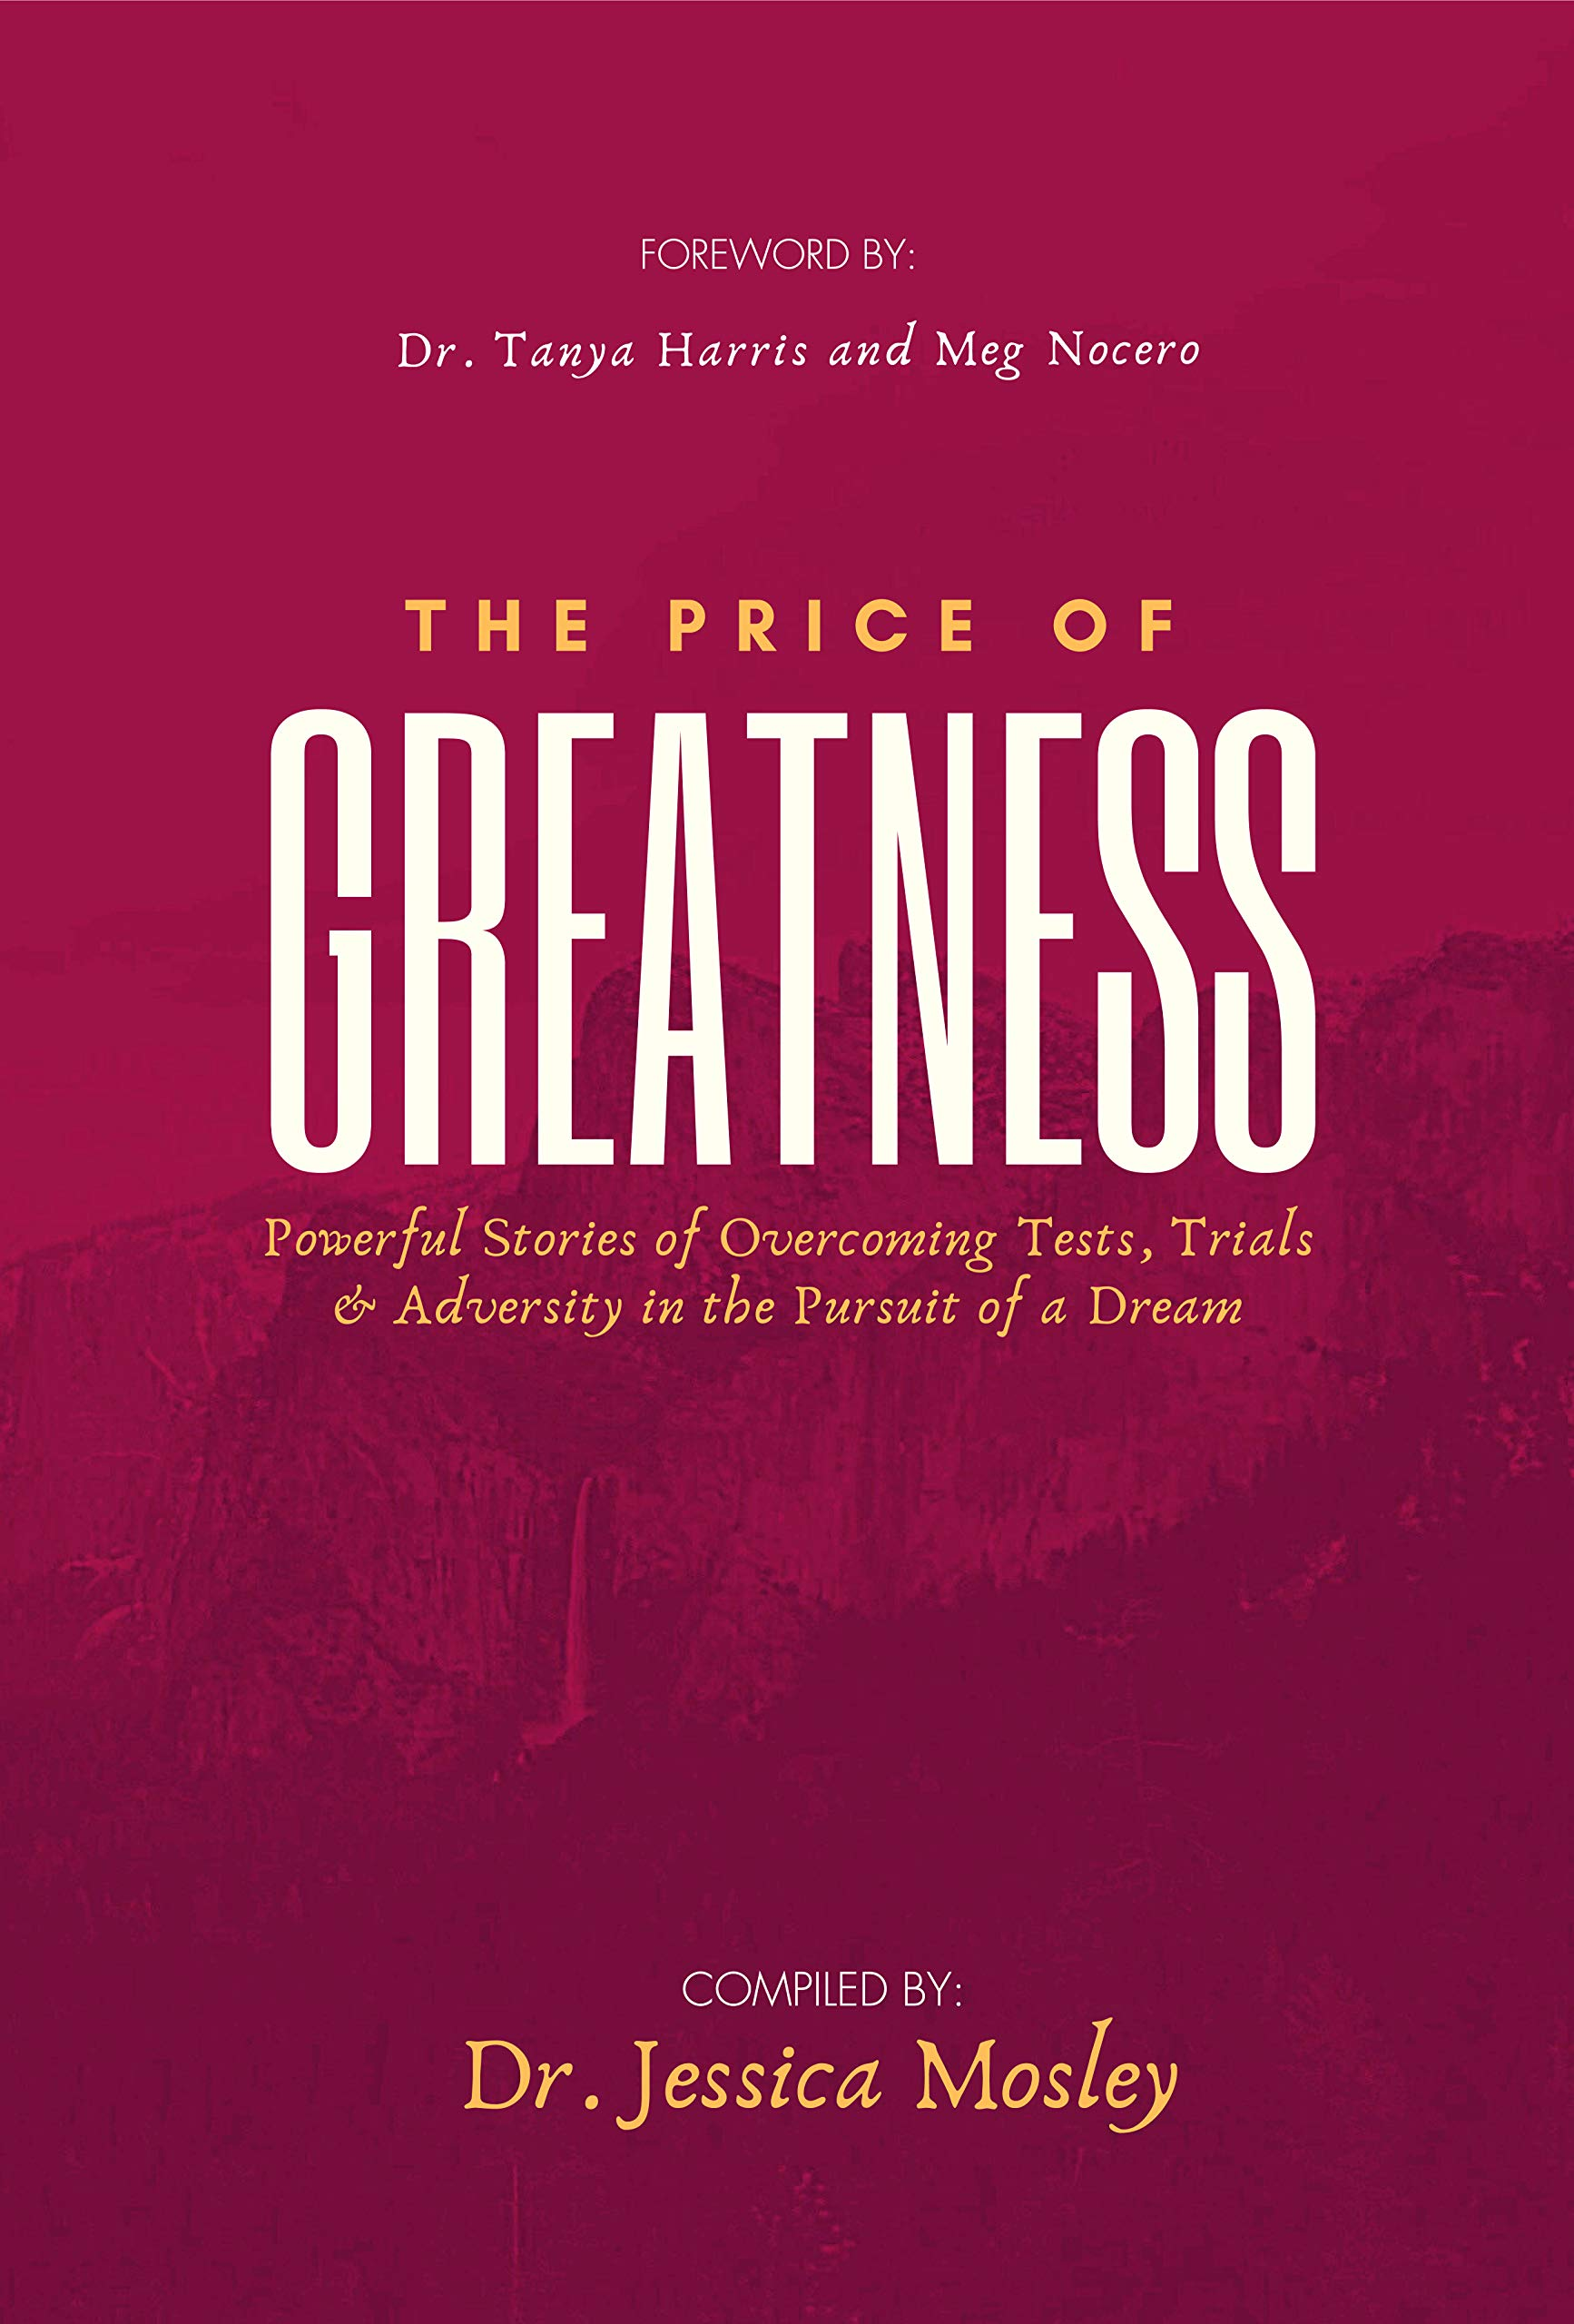 The Price of Greatness : Powerful Stories of Overcoming Tests, Trials & Adversity in the Pursuit of a Dream